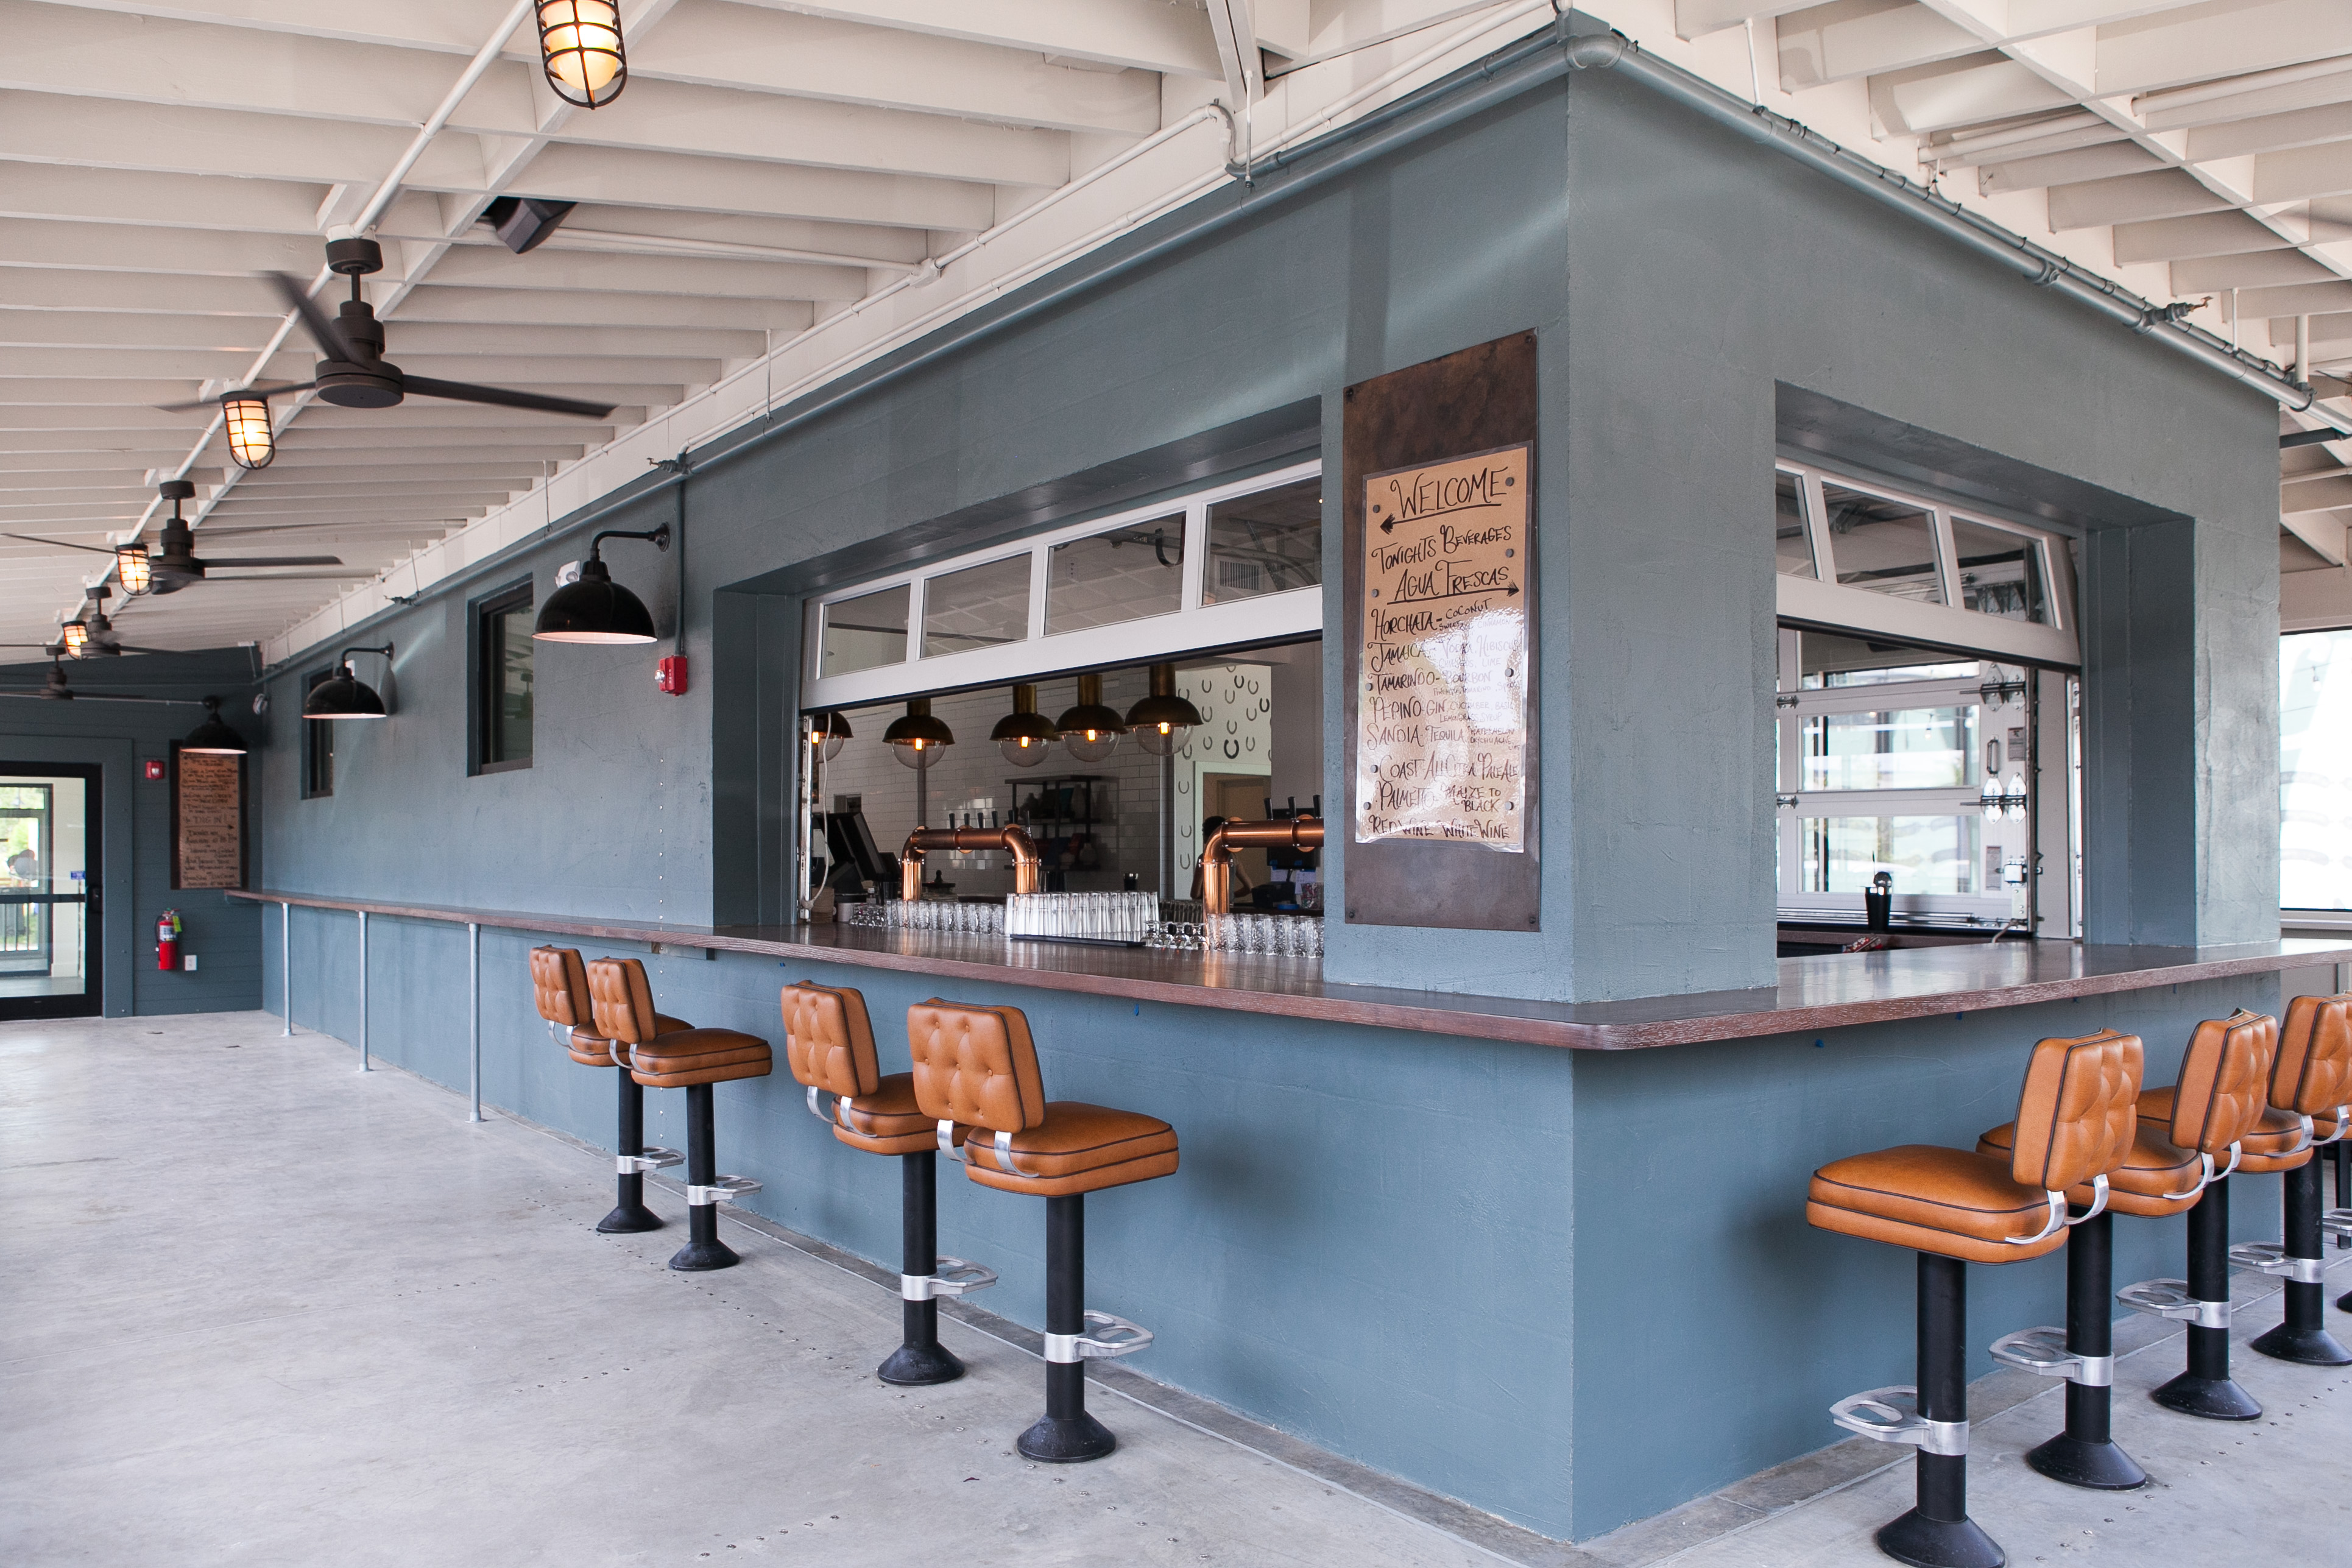 Behold the crisp interiors at lewis barbecue eater for M kitchen harbison sc menu